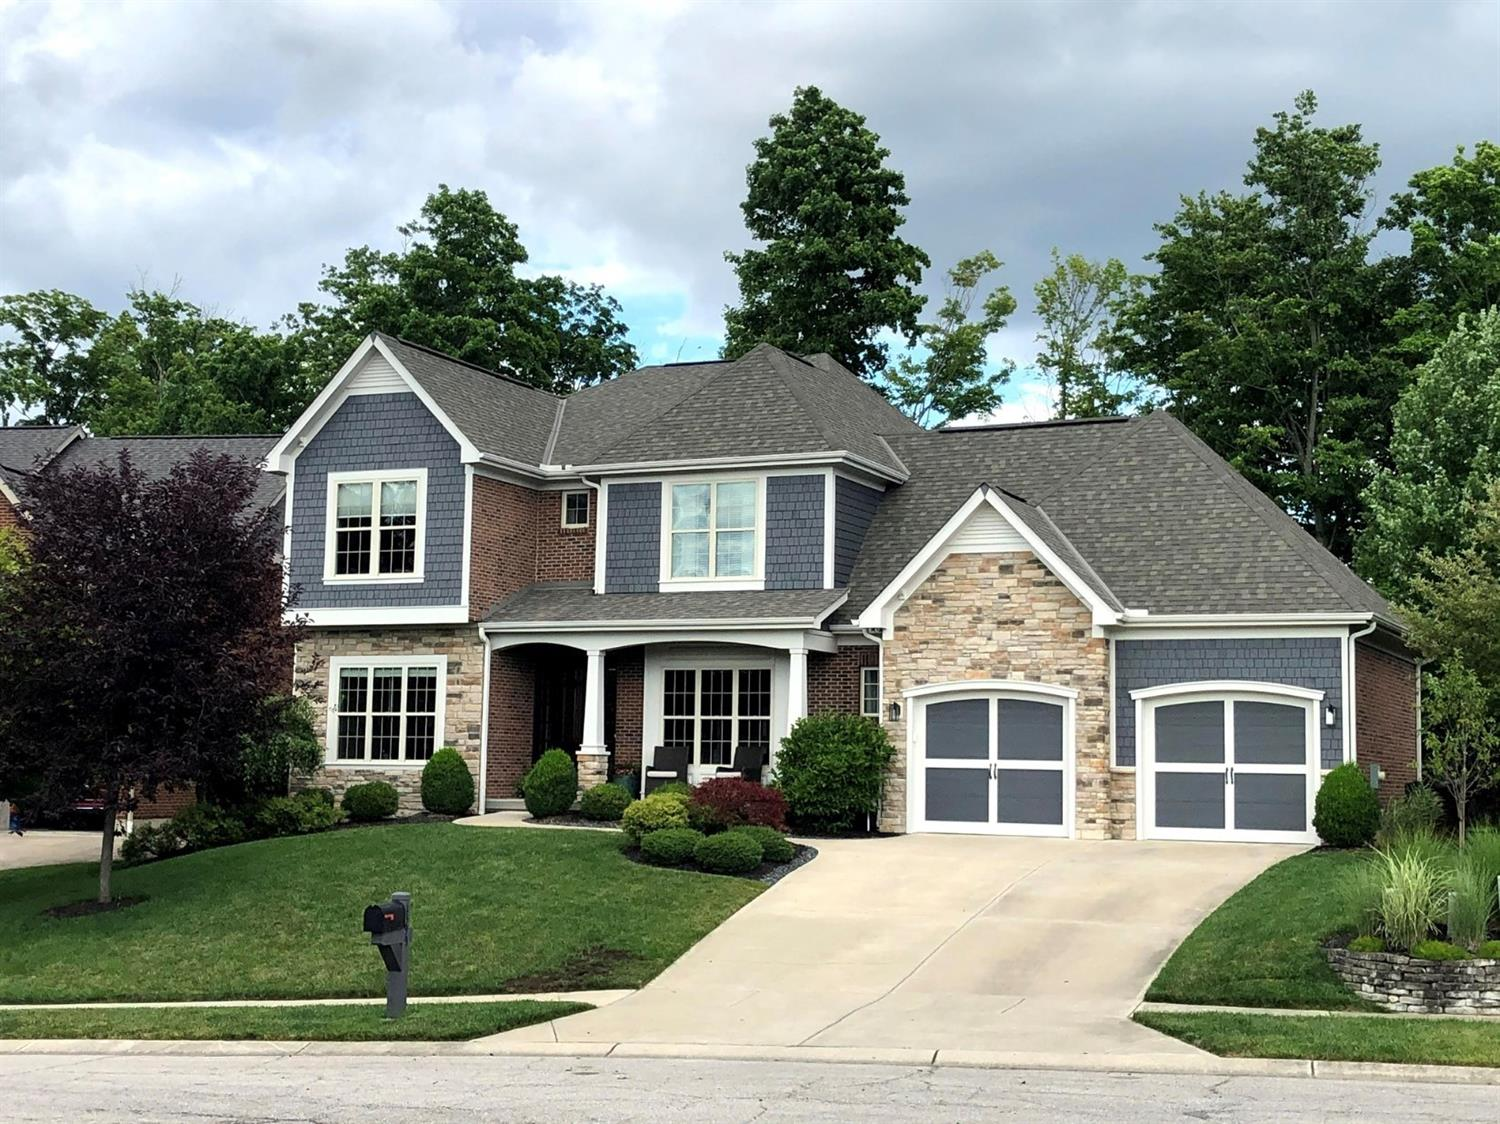 Property for sale at 1399 Grand Oaks Drive, Anderson Twp,  Ohio 45255